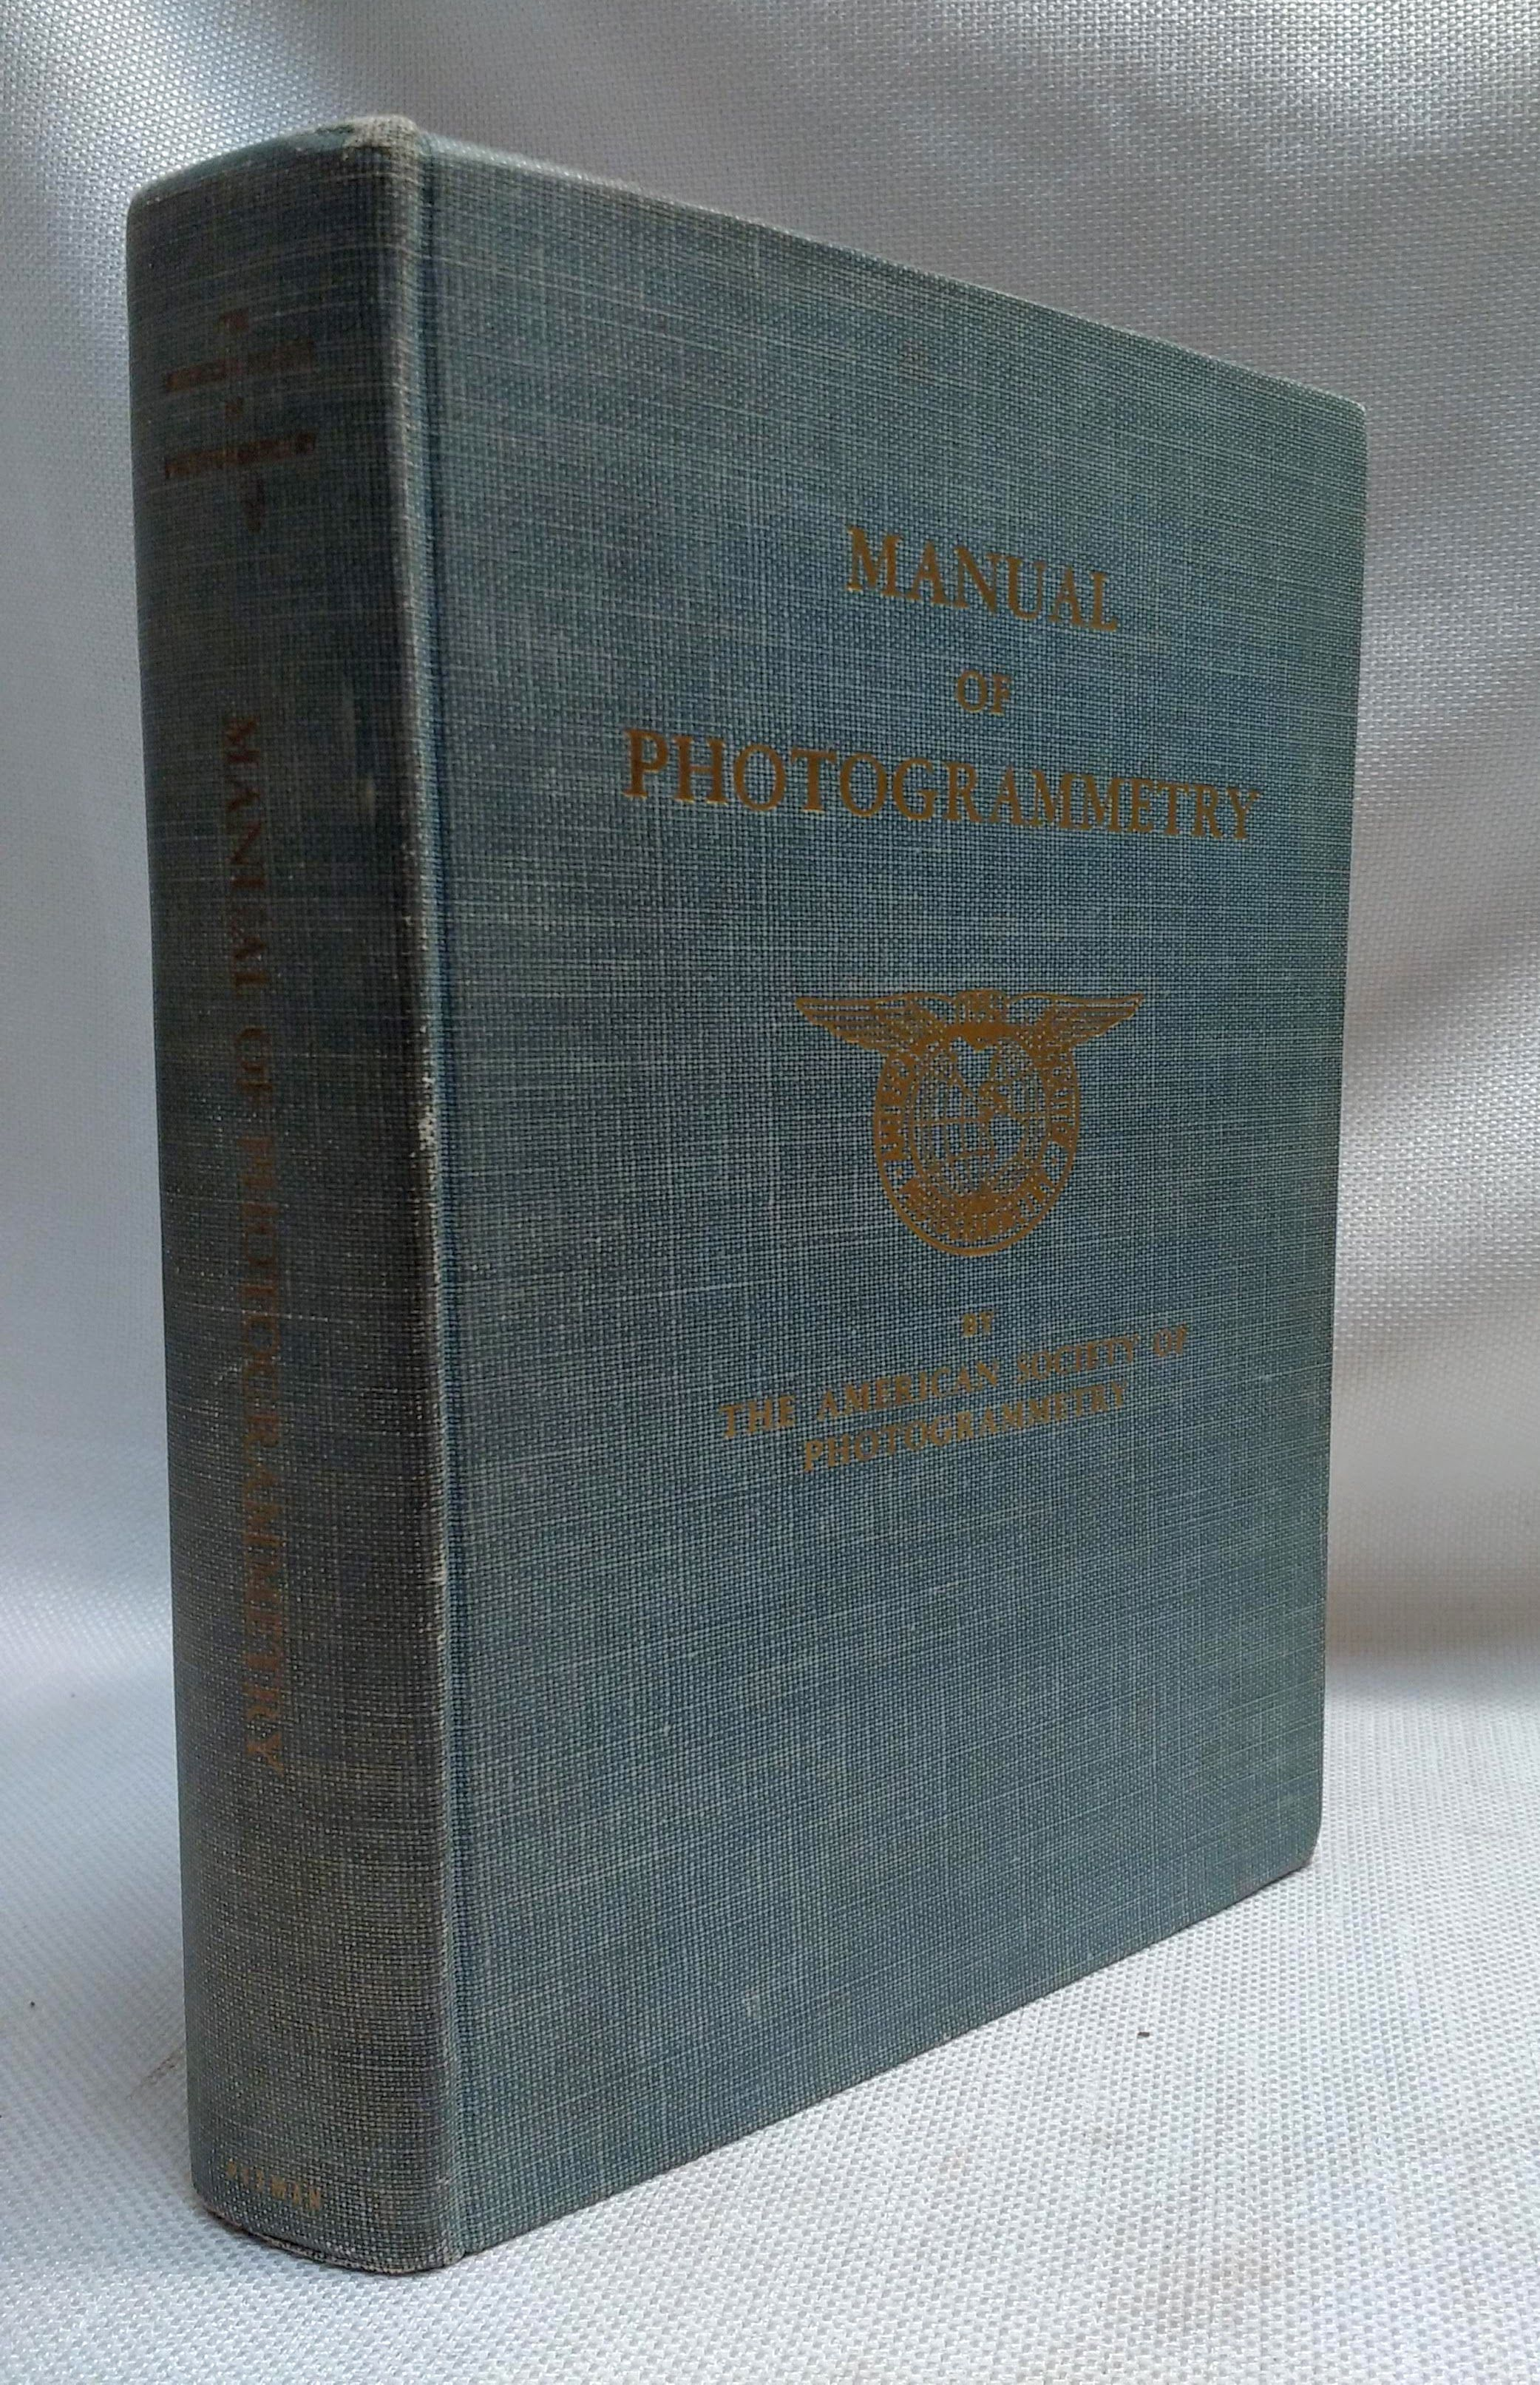 Manual of Photogrammetry (Preliminary Edition), American Society of Photogrammetry; McCurdy, P.G. [editor]; et al